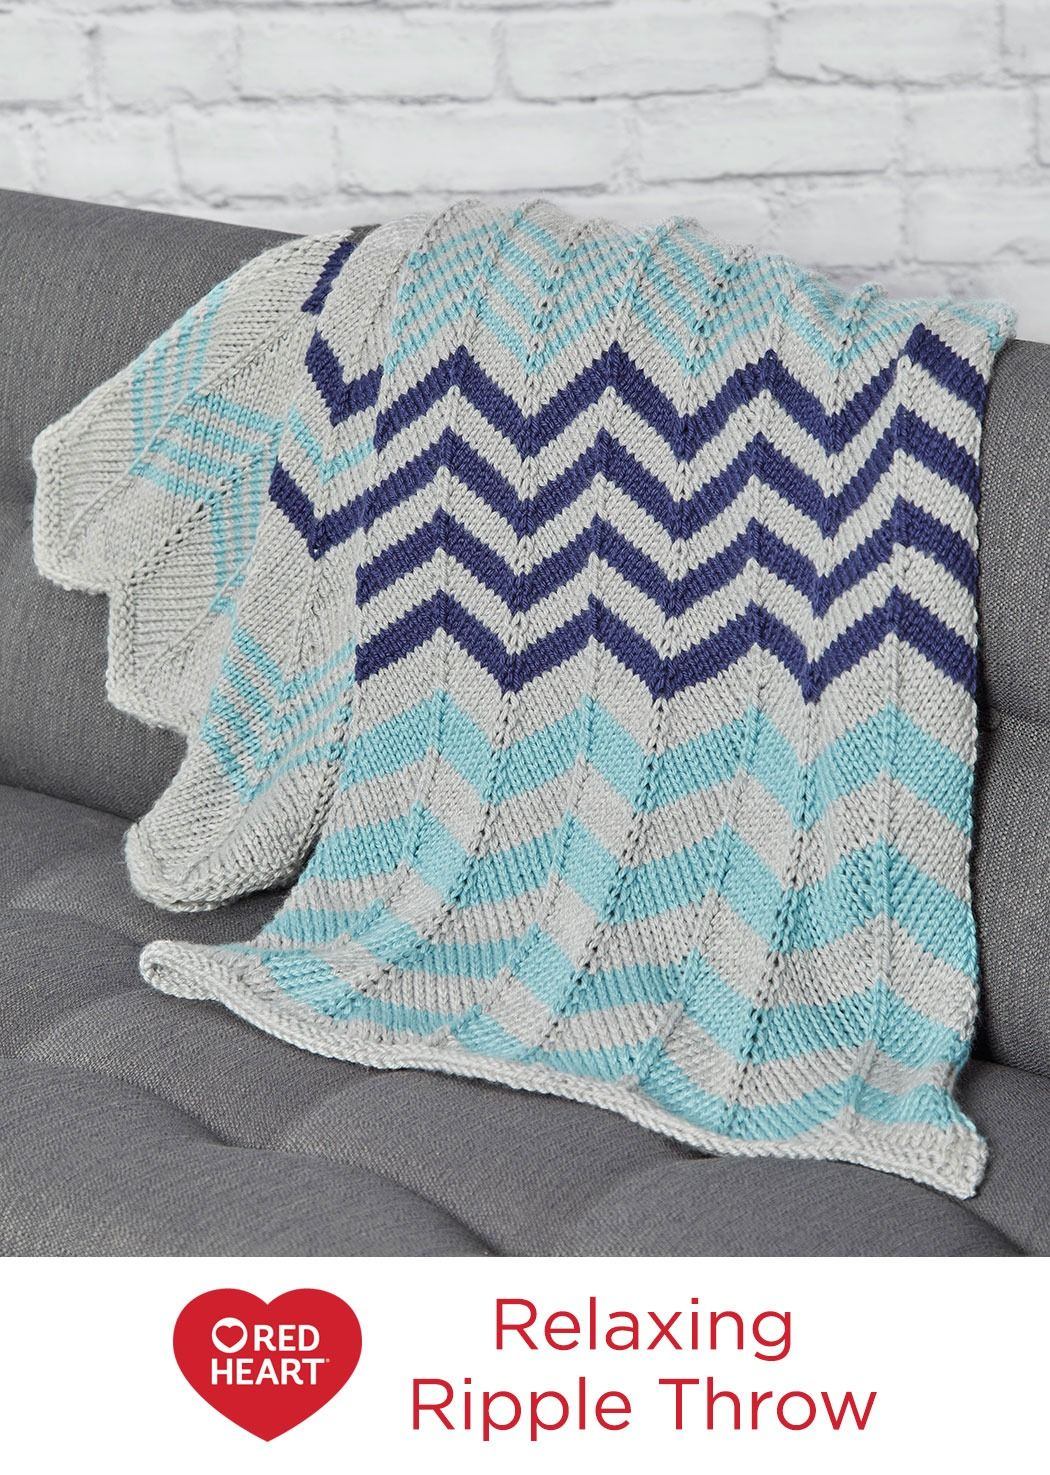 Relaxing ripple throw free knitting pattern in red heart soft relaxing ripple throw free knitting pattern in red heart soft essentials yarn zigzags are bankloansurffo Image collections